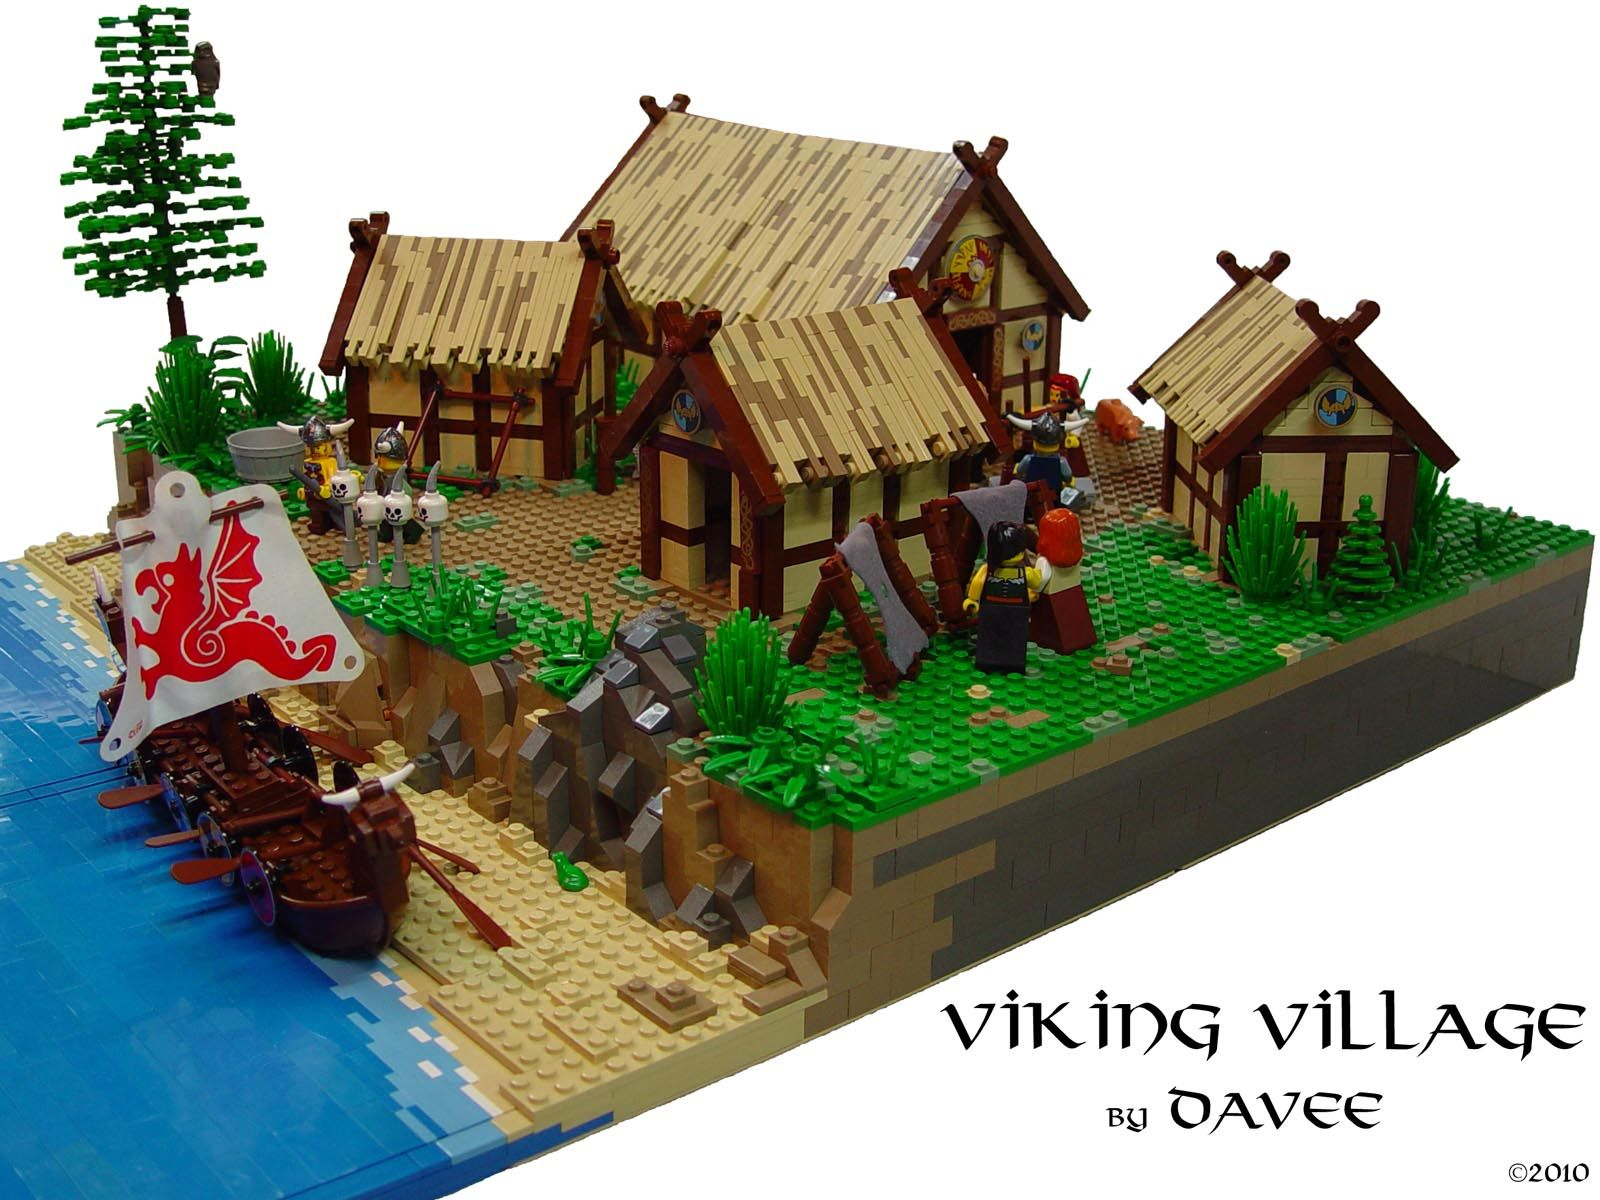 A Viking Village Custom Lego Creations Lego Lego House Lego Castle